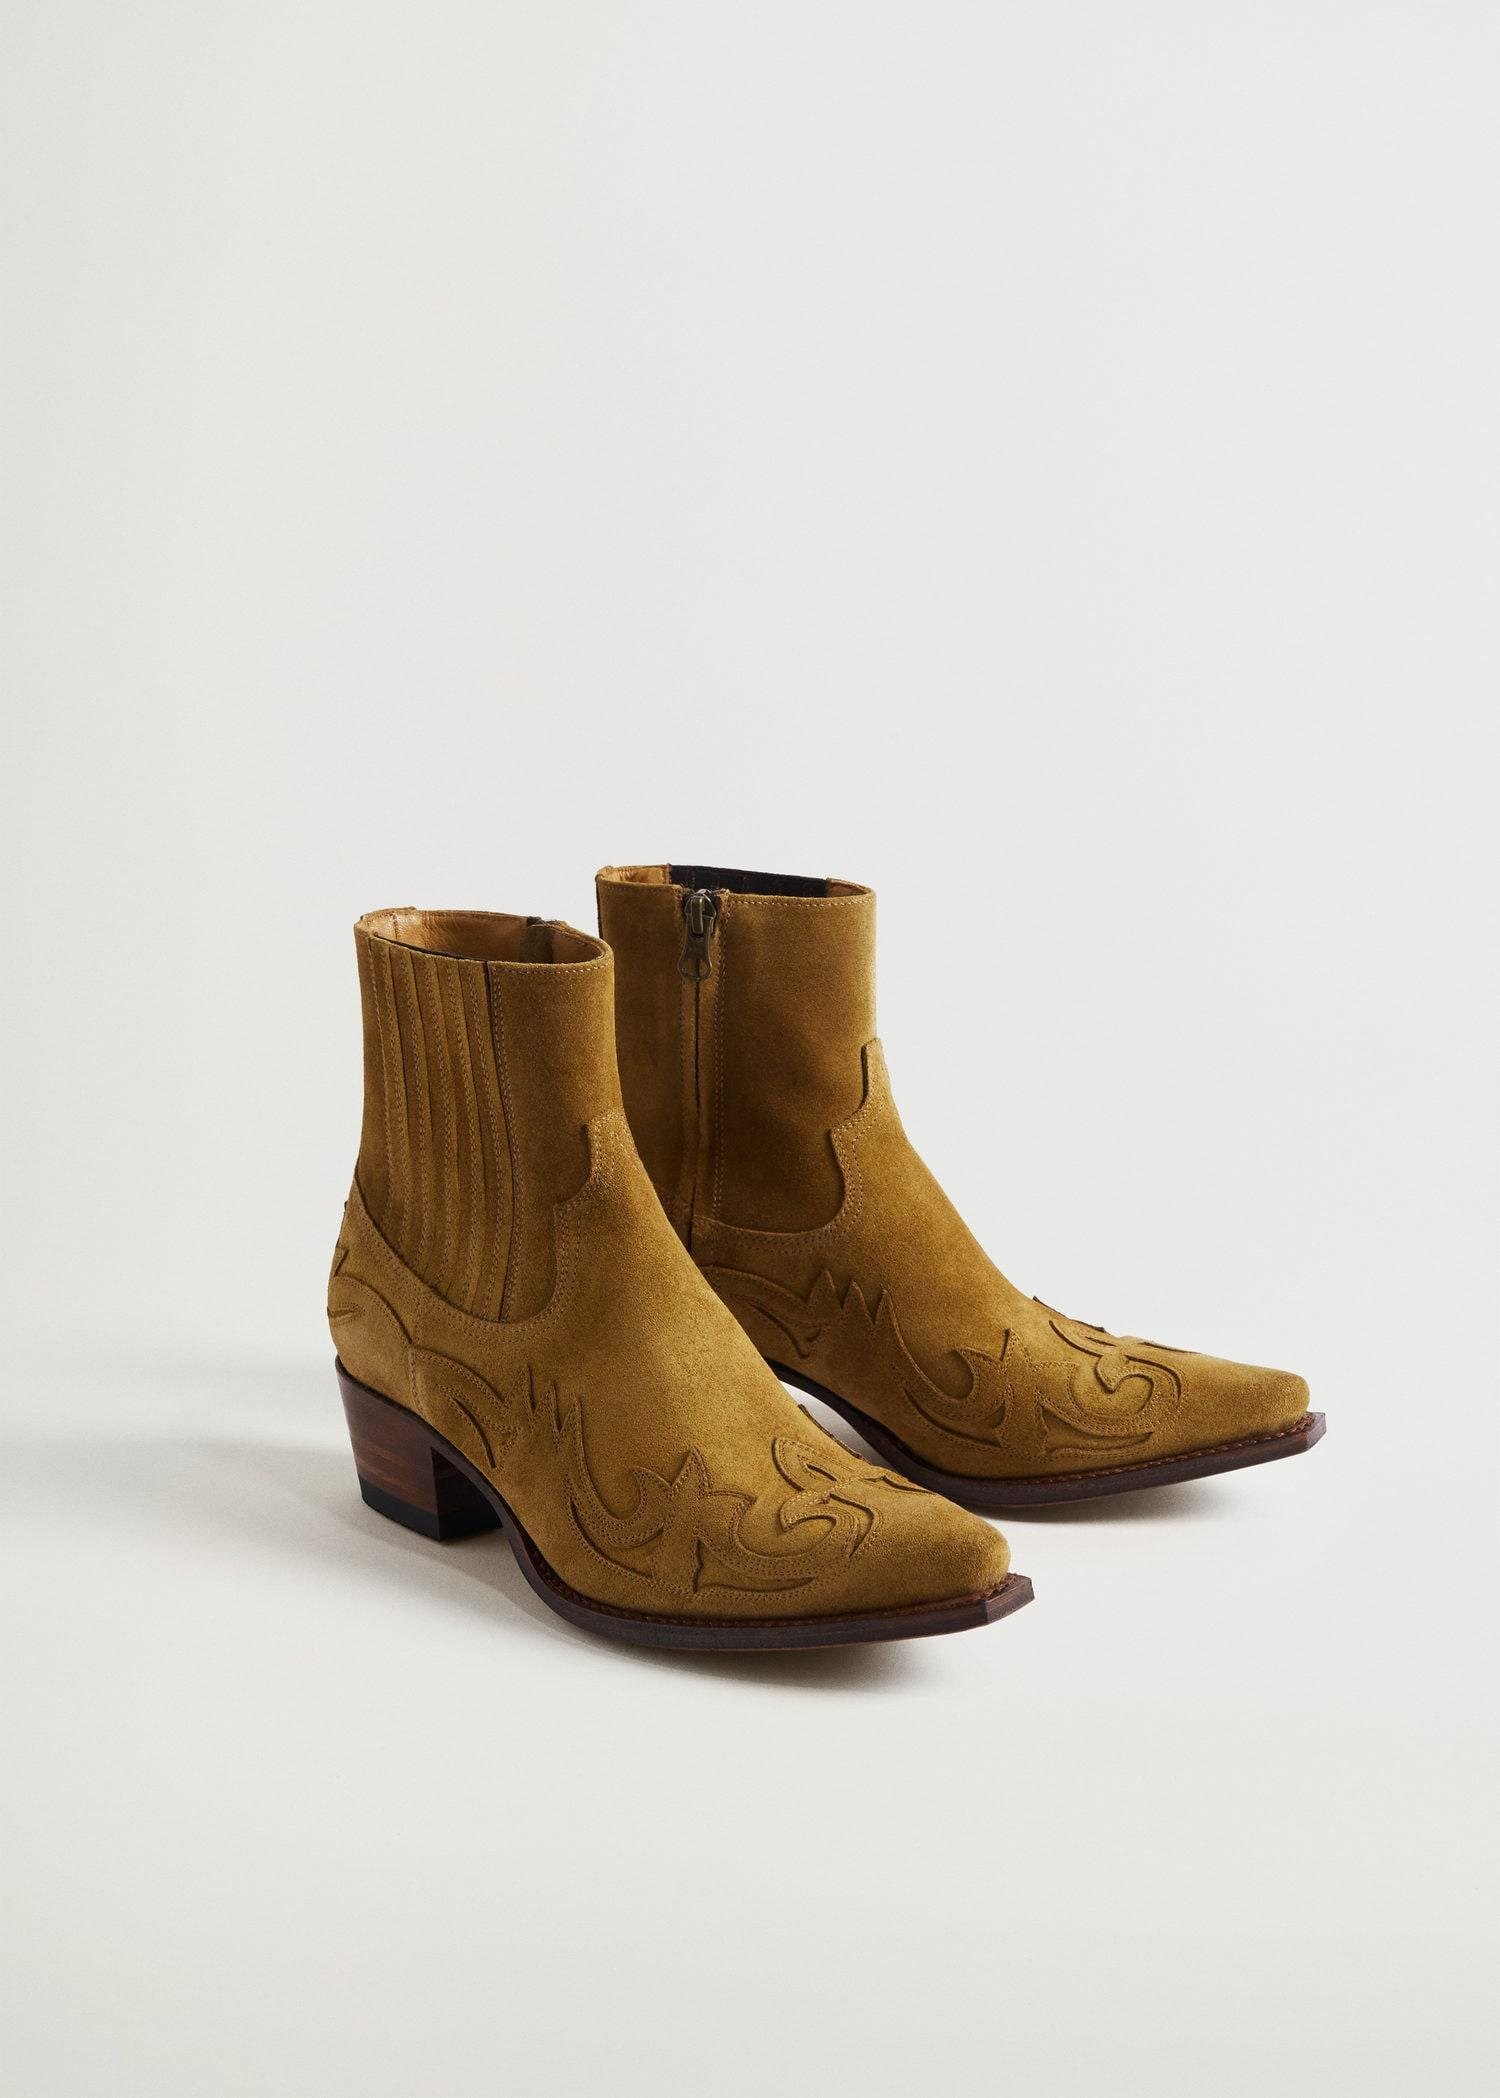 Goodyear welted leather boots 1